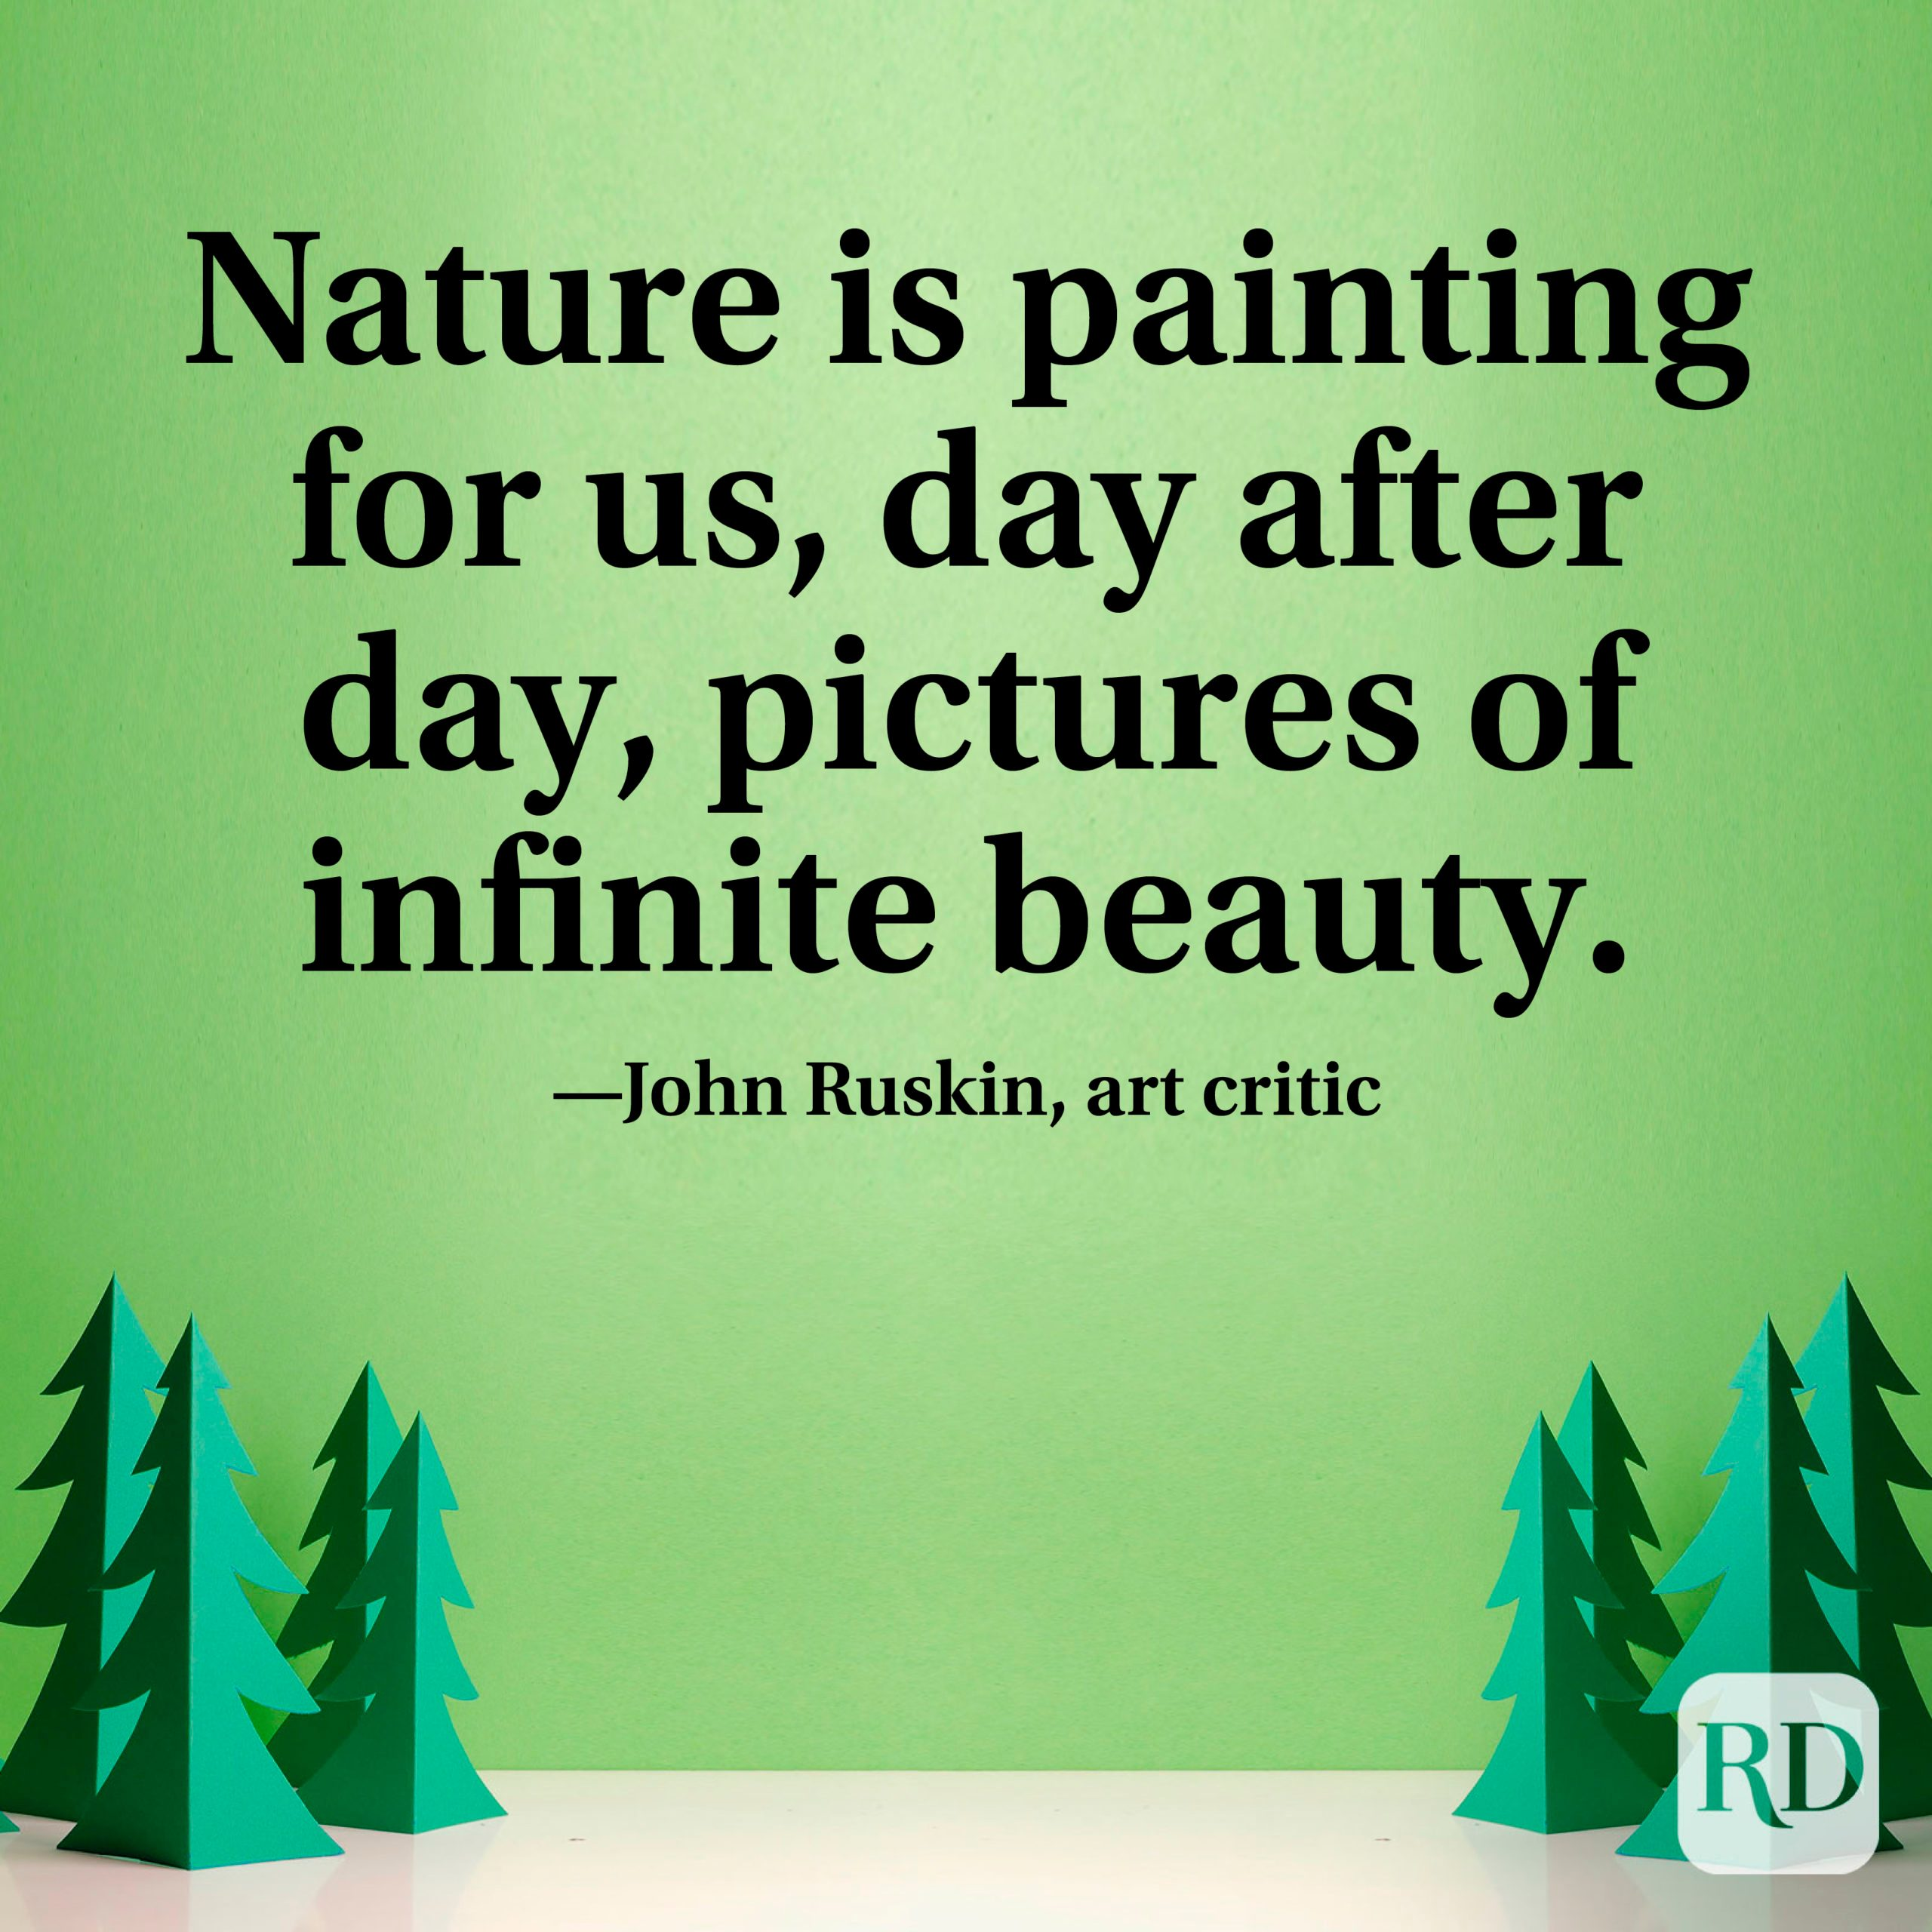 """""""Nature is painting for us, day after day, pictures of infinite beauty."""" —John Ruskin, art critic"""